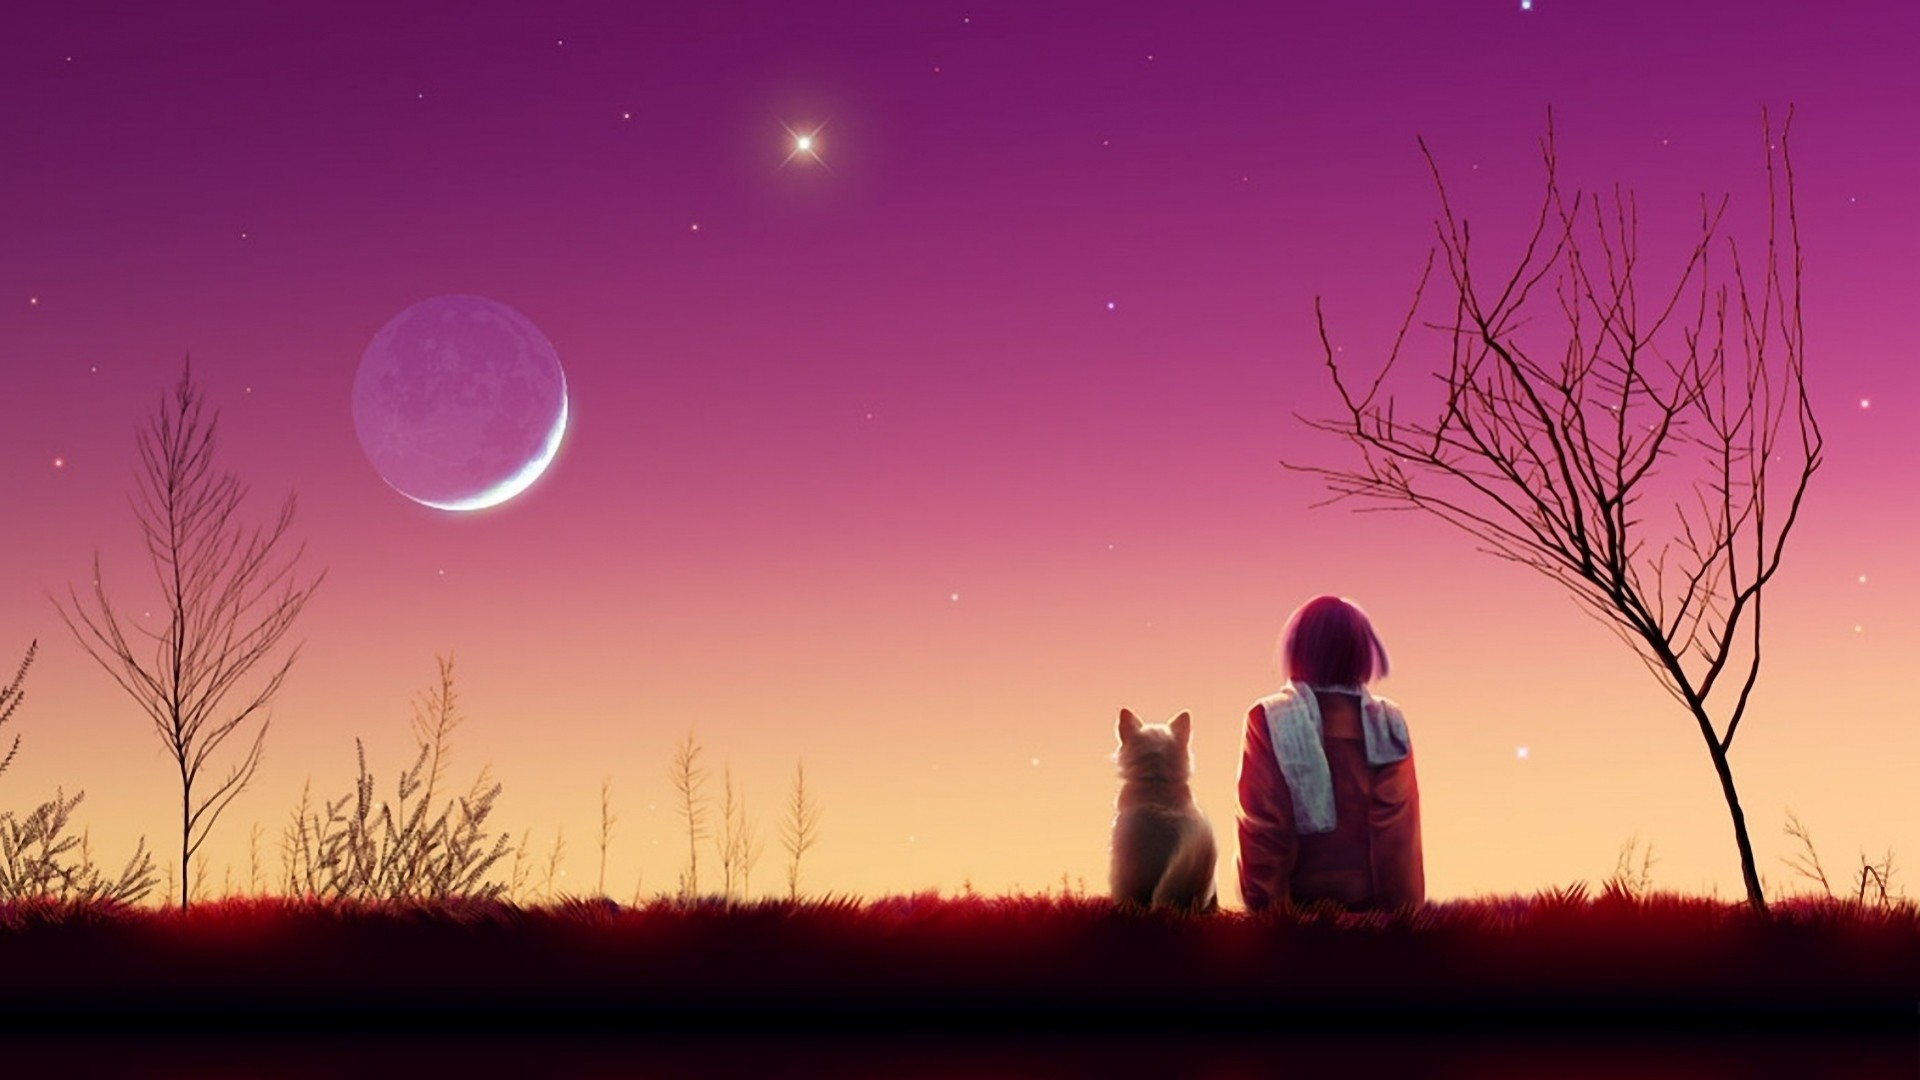 1920x1080 Preview wallpaper kagaya moon, anime, girl, cat, sunset, nature